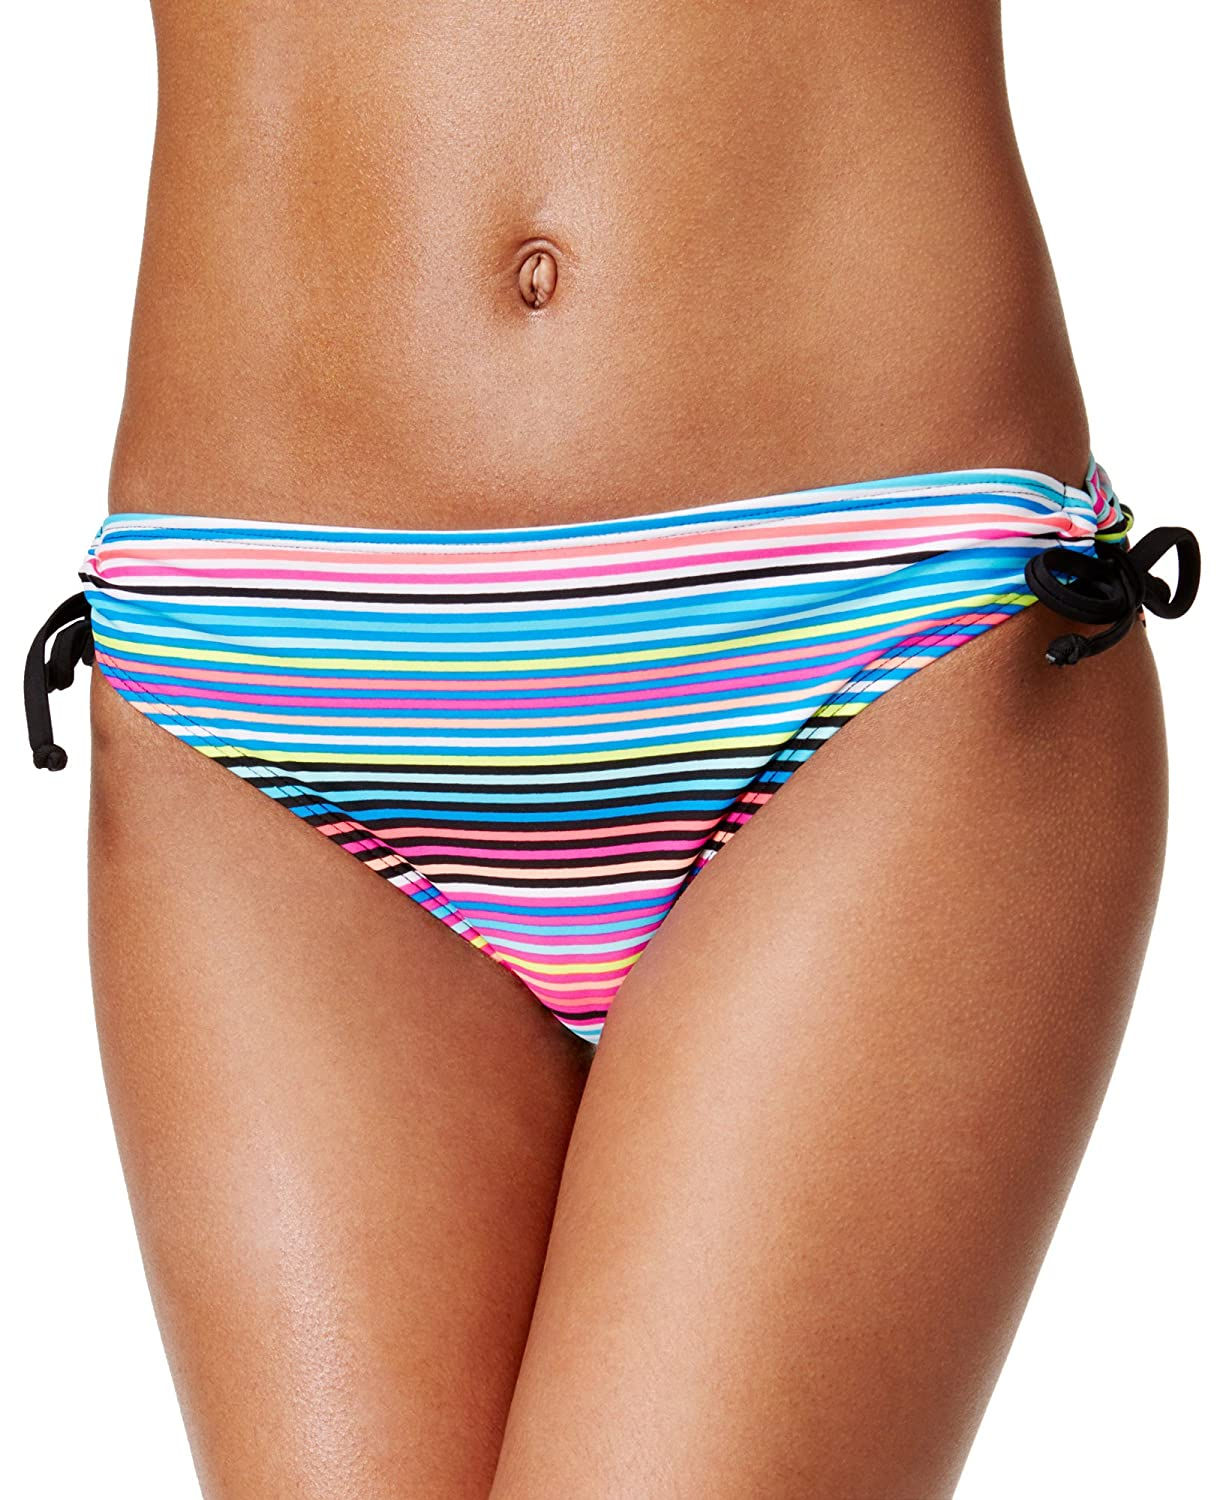 California Waves SWIMWEAR レディース B06XJ7F2S8 Small|マルチ